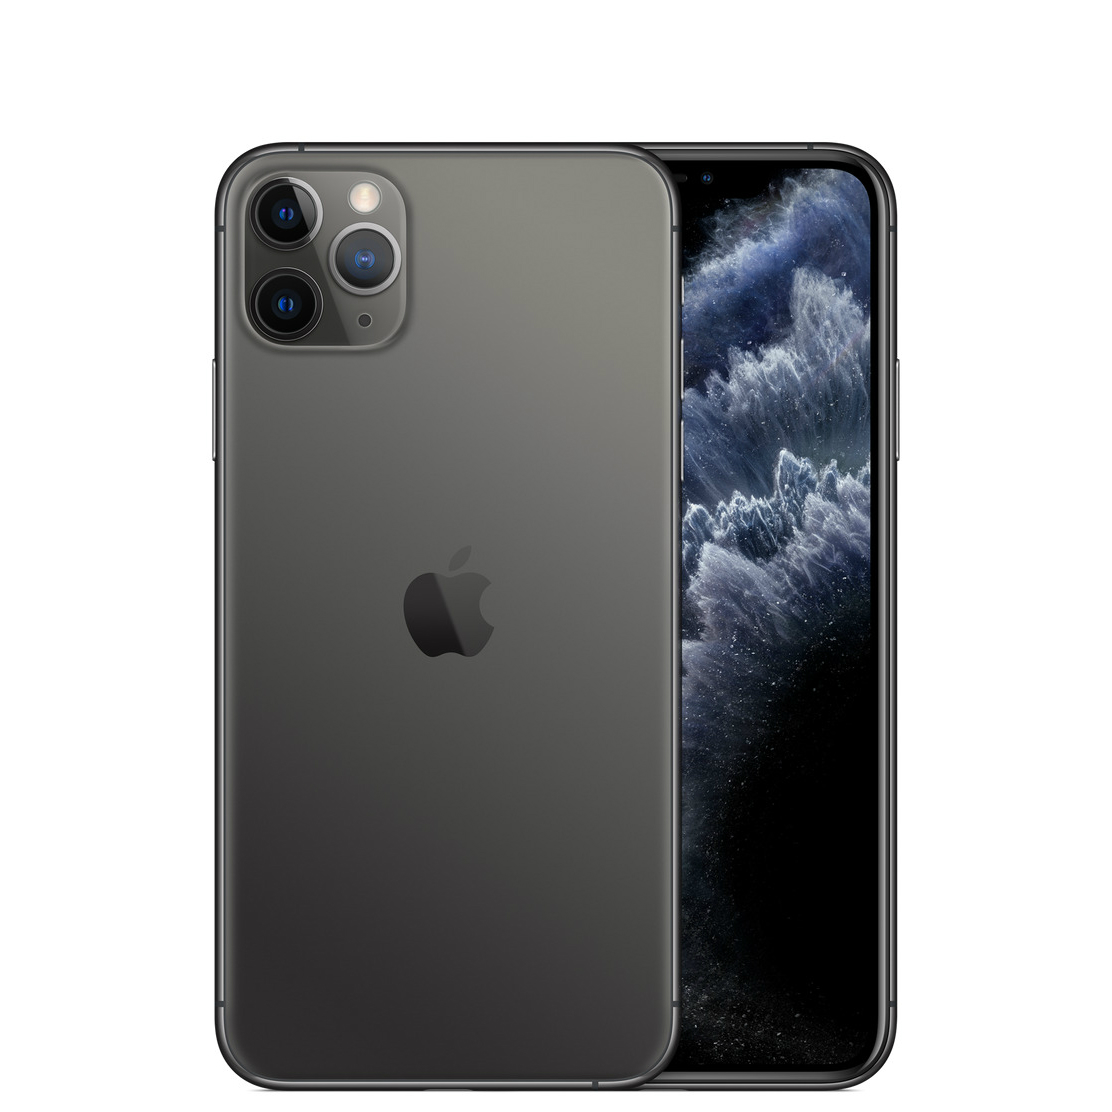 Image of Apple iPhone 11 Pro 256GB A2217 Dual Sim with Tempered Glass Screen Protector - Space Gray